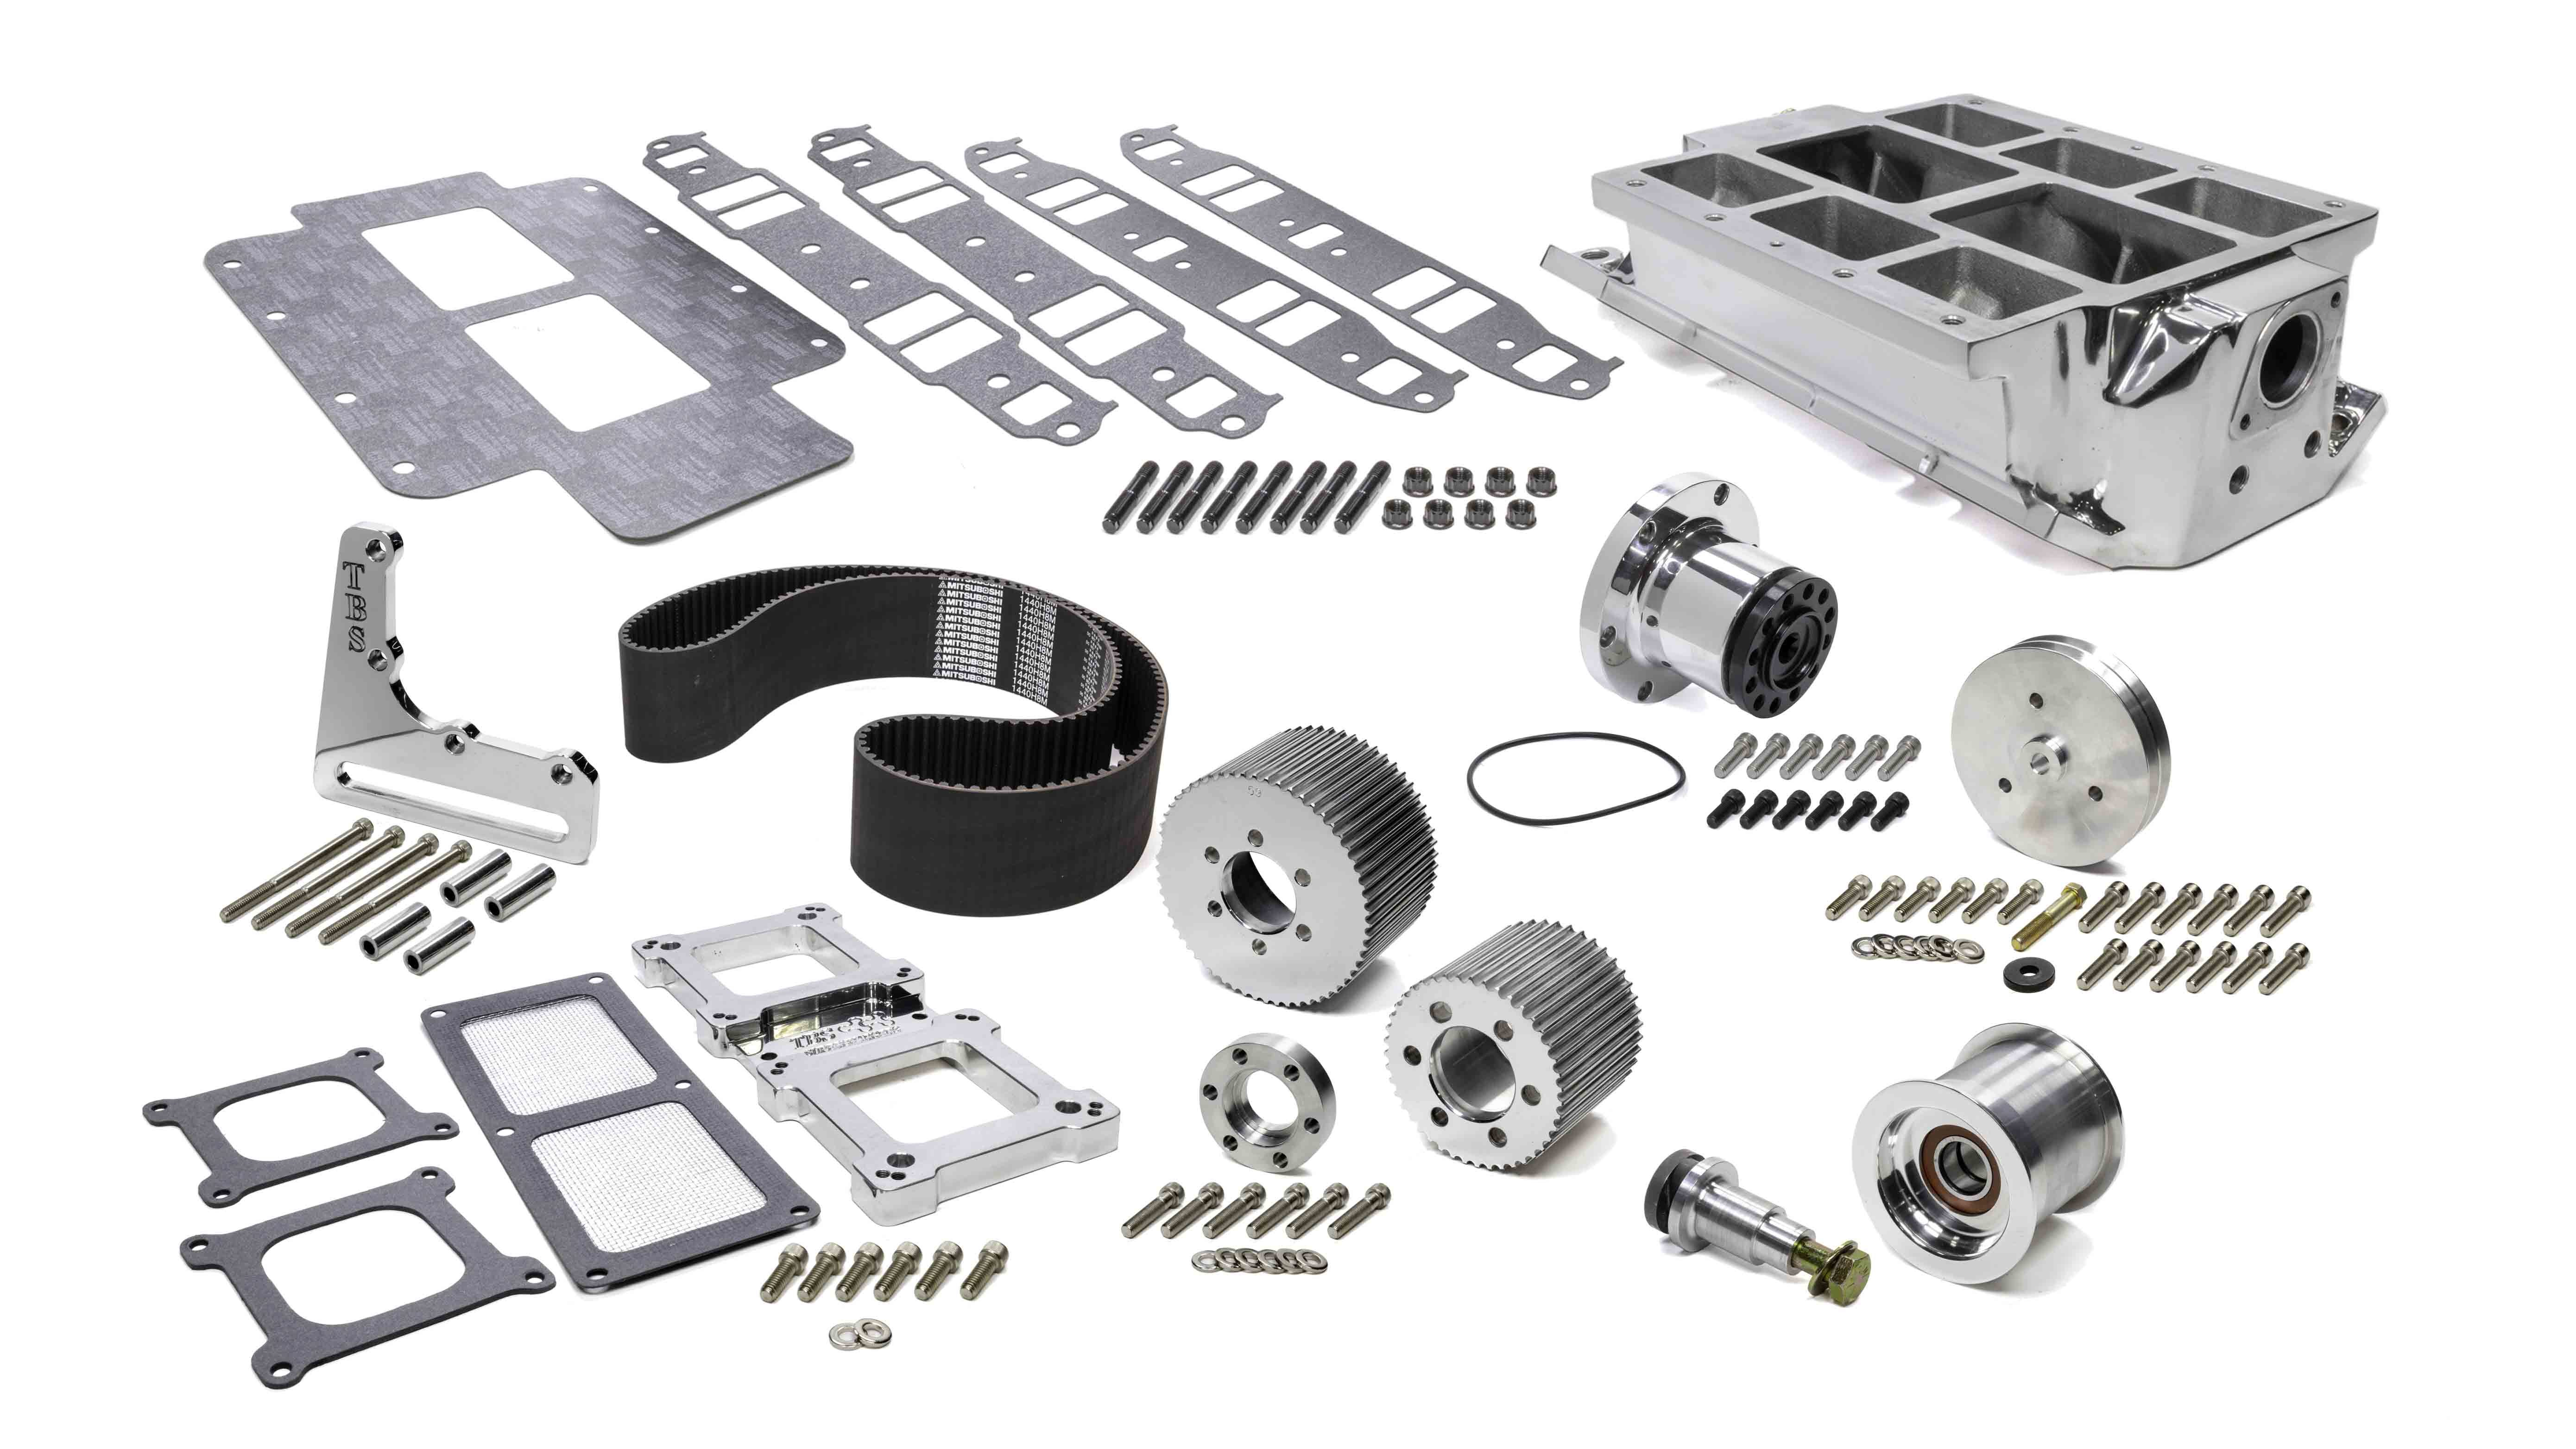 The Blower Shop 2611 Supercharger Drive Kit, Belt / Crankshaft Hardware / Hub / Intake / Pulleys / Spacers, Polished, 6-71 Superchargers, Small Block Chevy, Kit